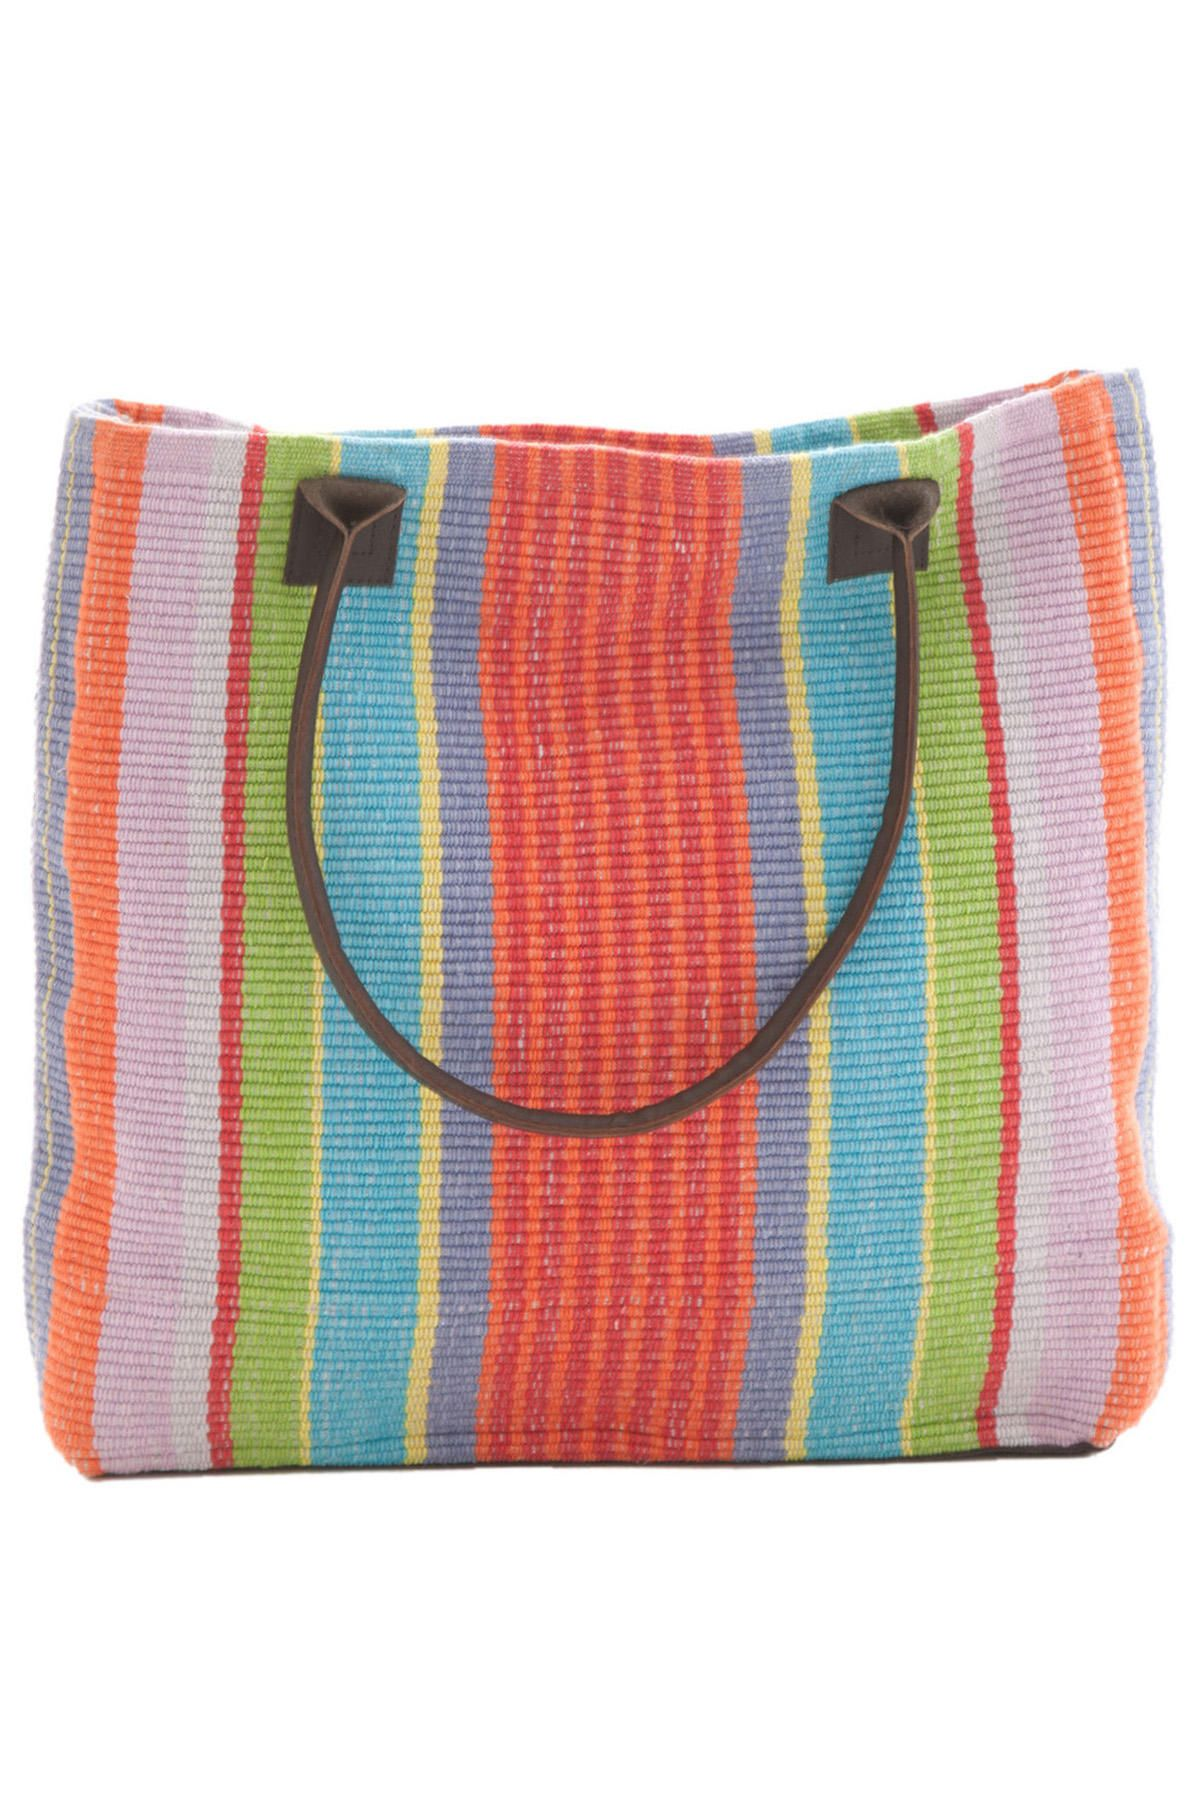 Dash Albert Garden Stripe Woven Cotton Tote Bag Our Carryall Rug Has A Construction And Is Hand Loomed In Durable 100